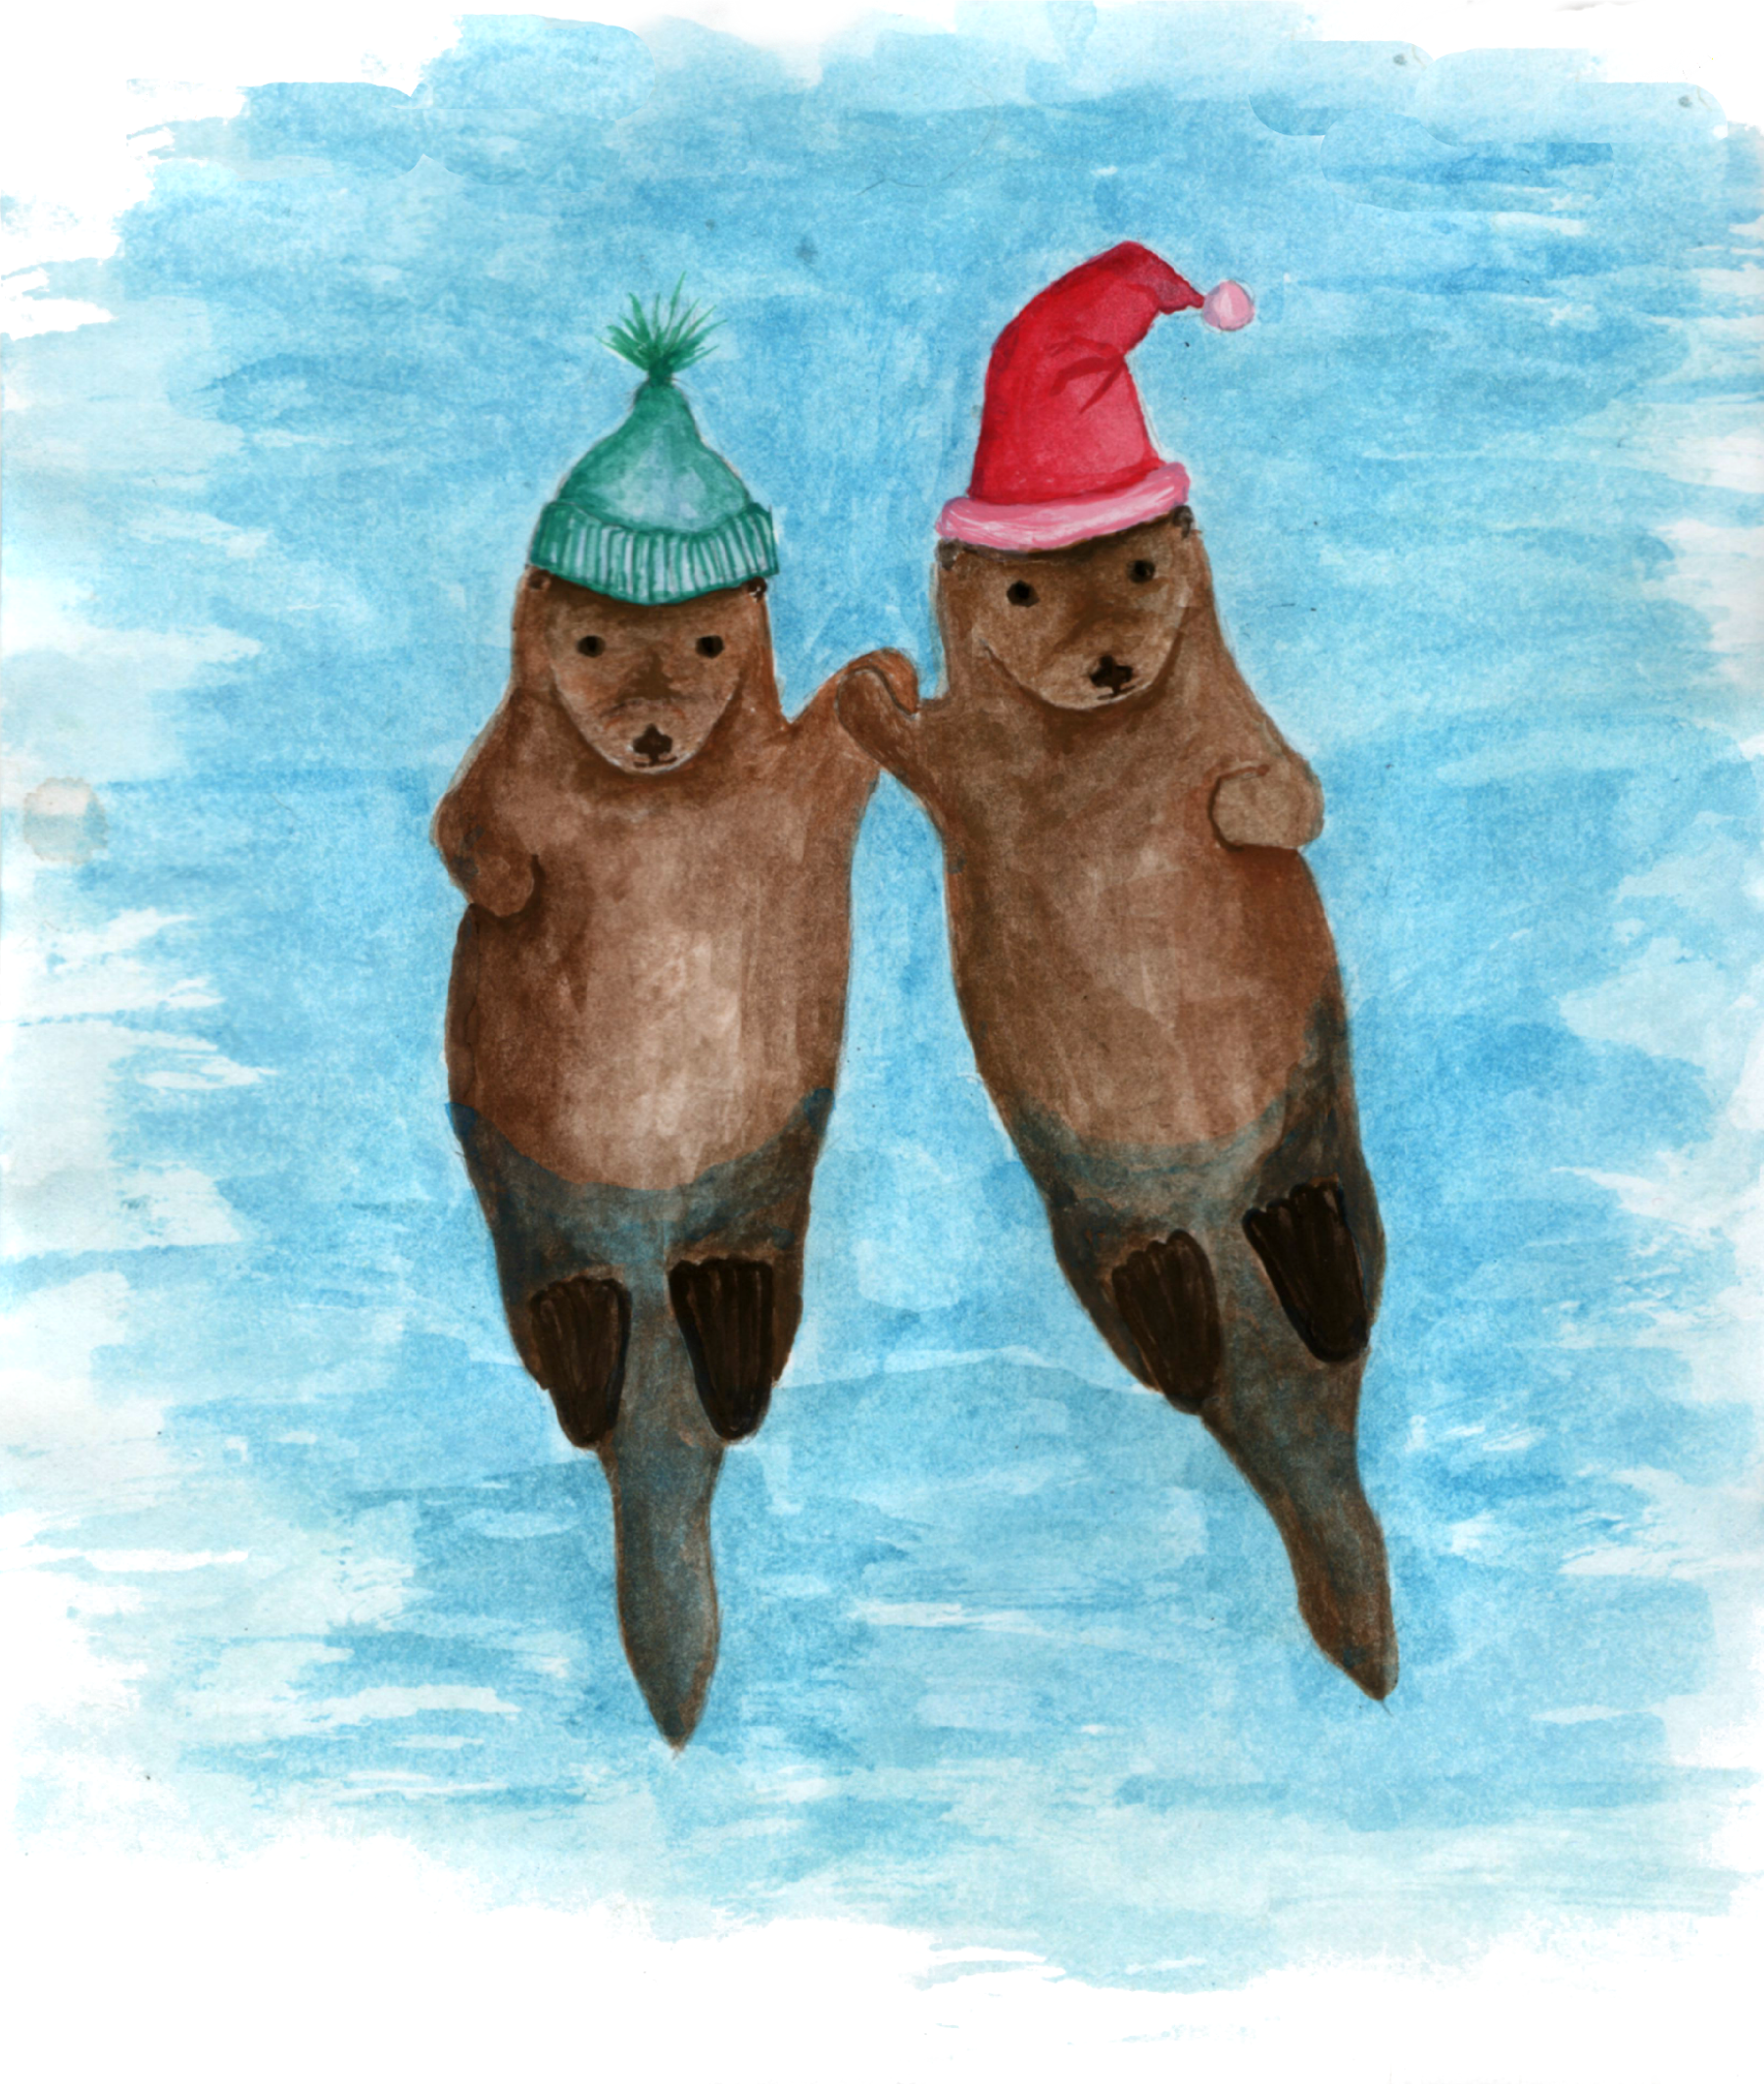 otterfriends-10.16.png